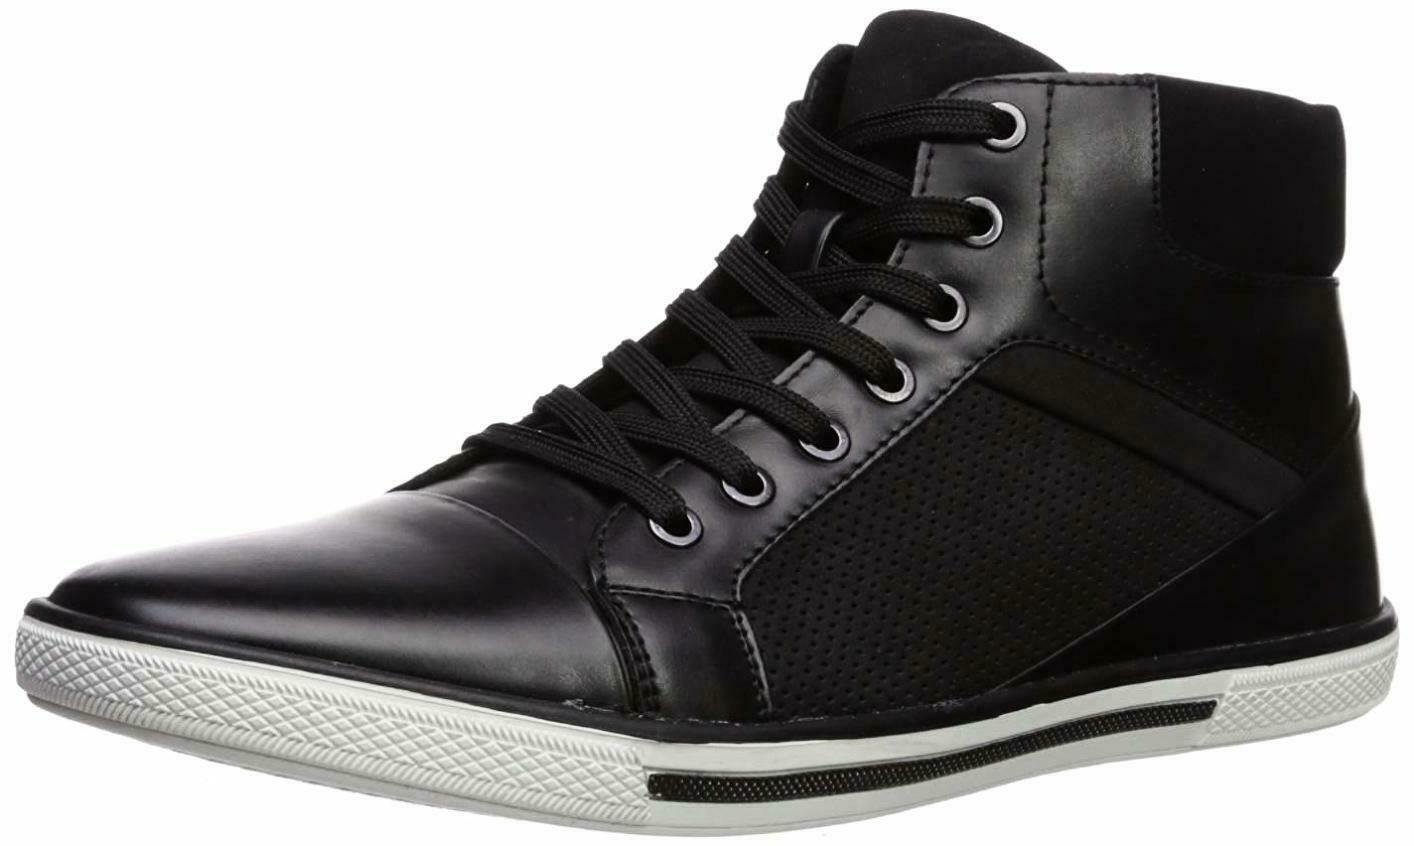 f1210795f023 Unlisted Kenneth Cole Crown Sneaker E - Choose SZ color Men s by nnncwa4489- Men s Casual